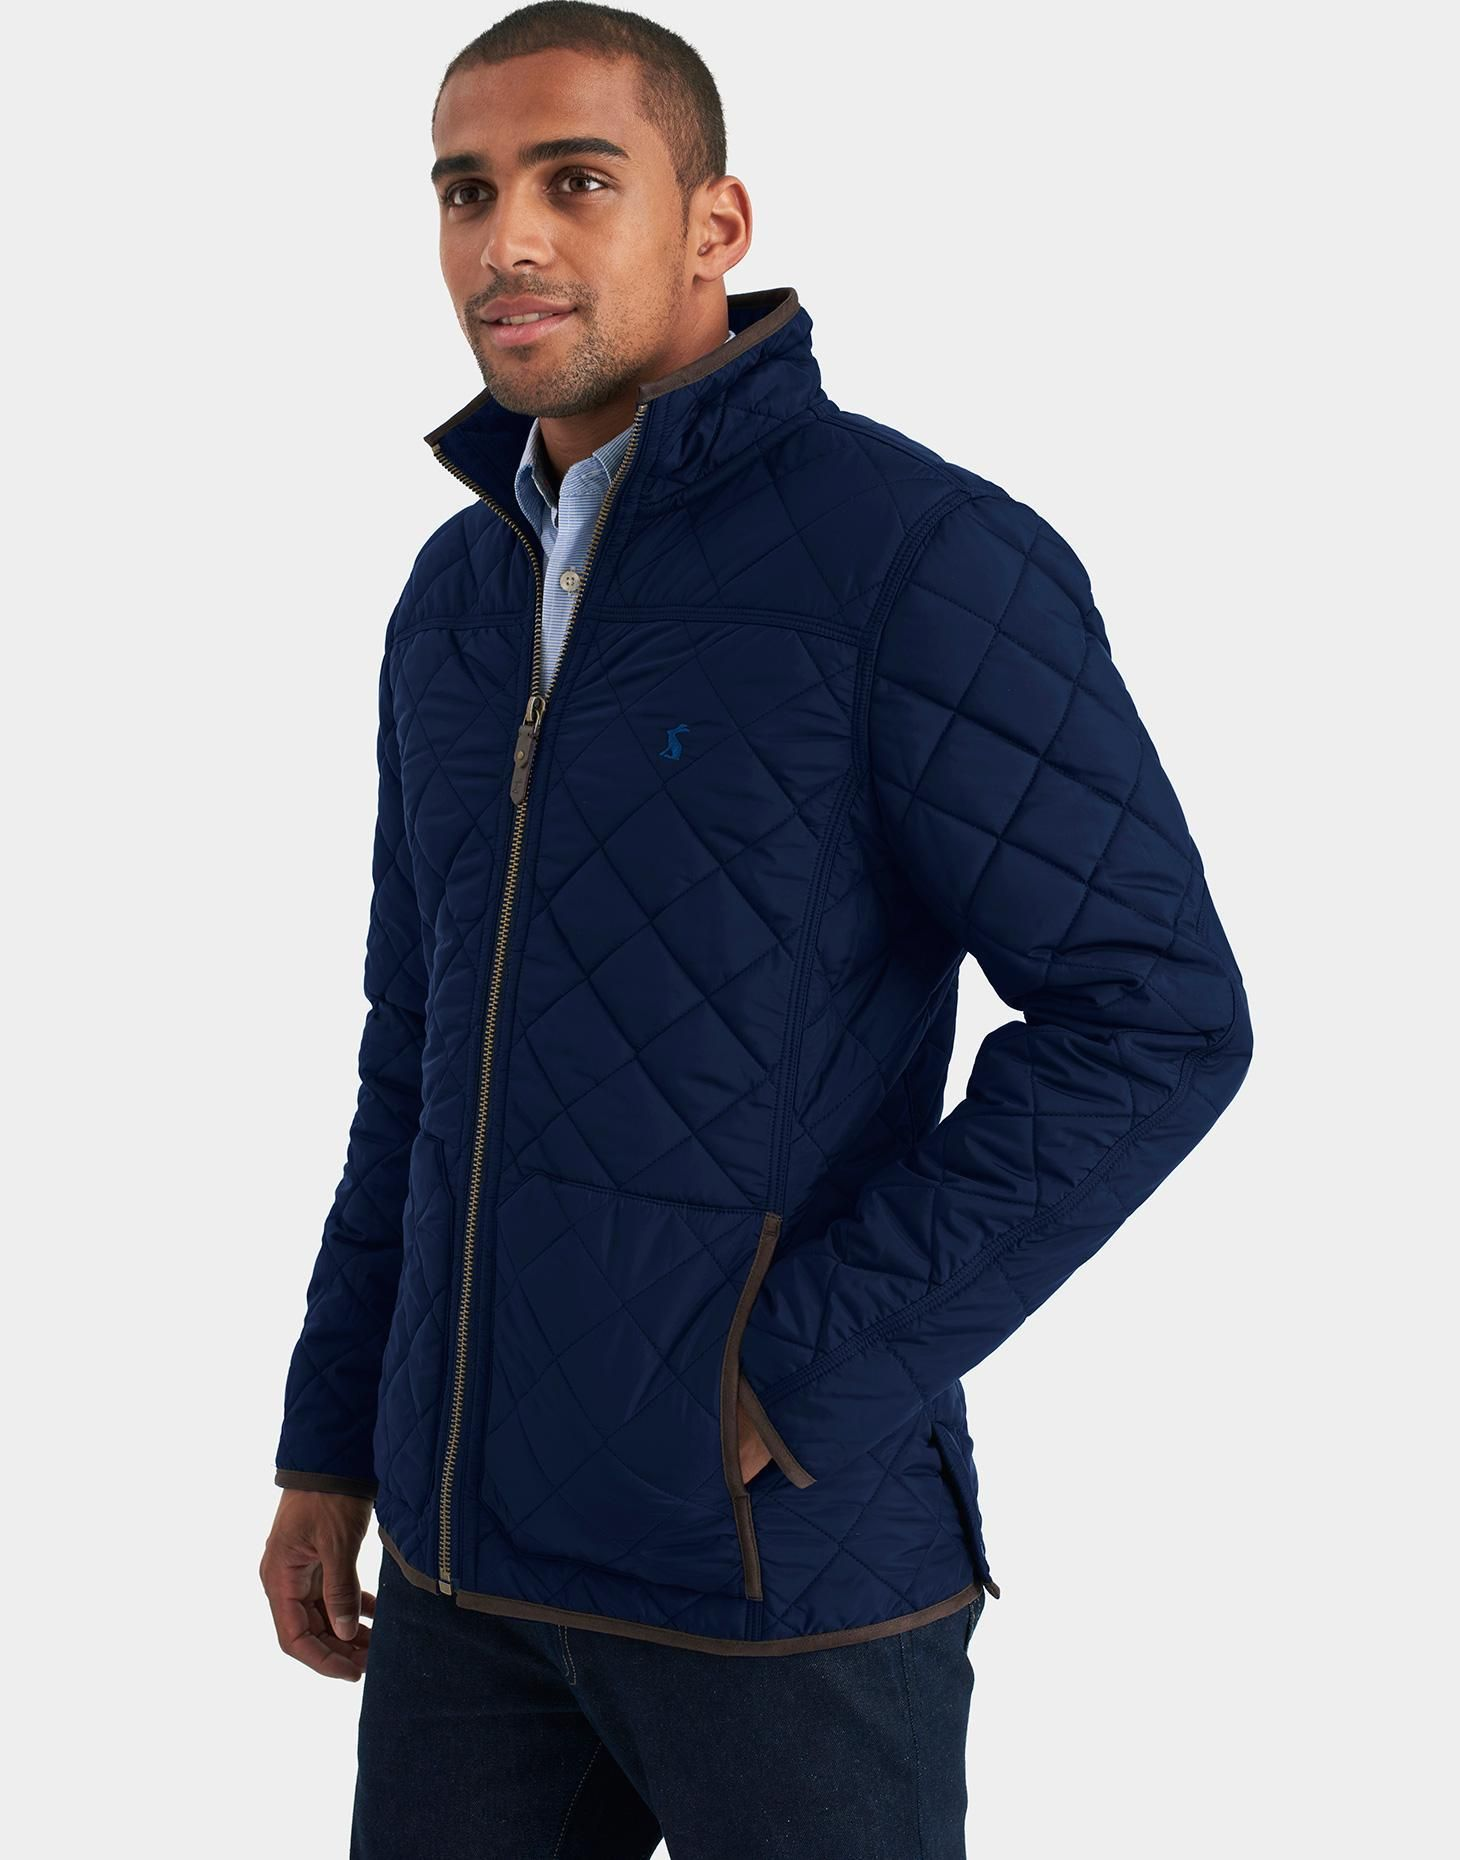 Pin by Oleg Gospodinko on Jasket | Pinterest | Joules uk : mens quilted coats uk - Adamdwight.com